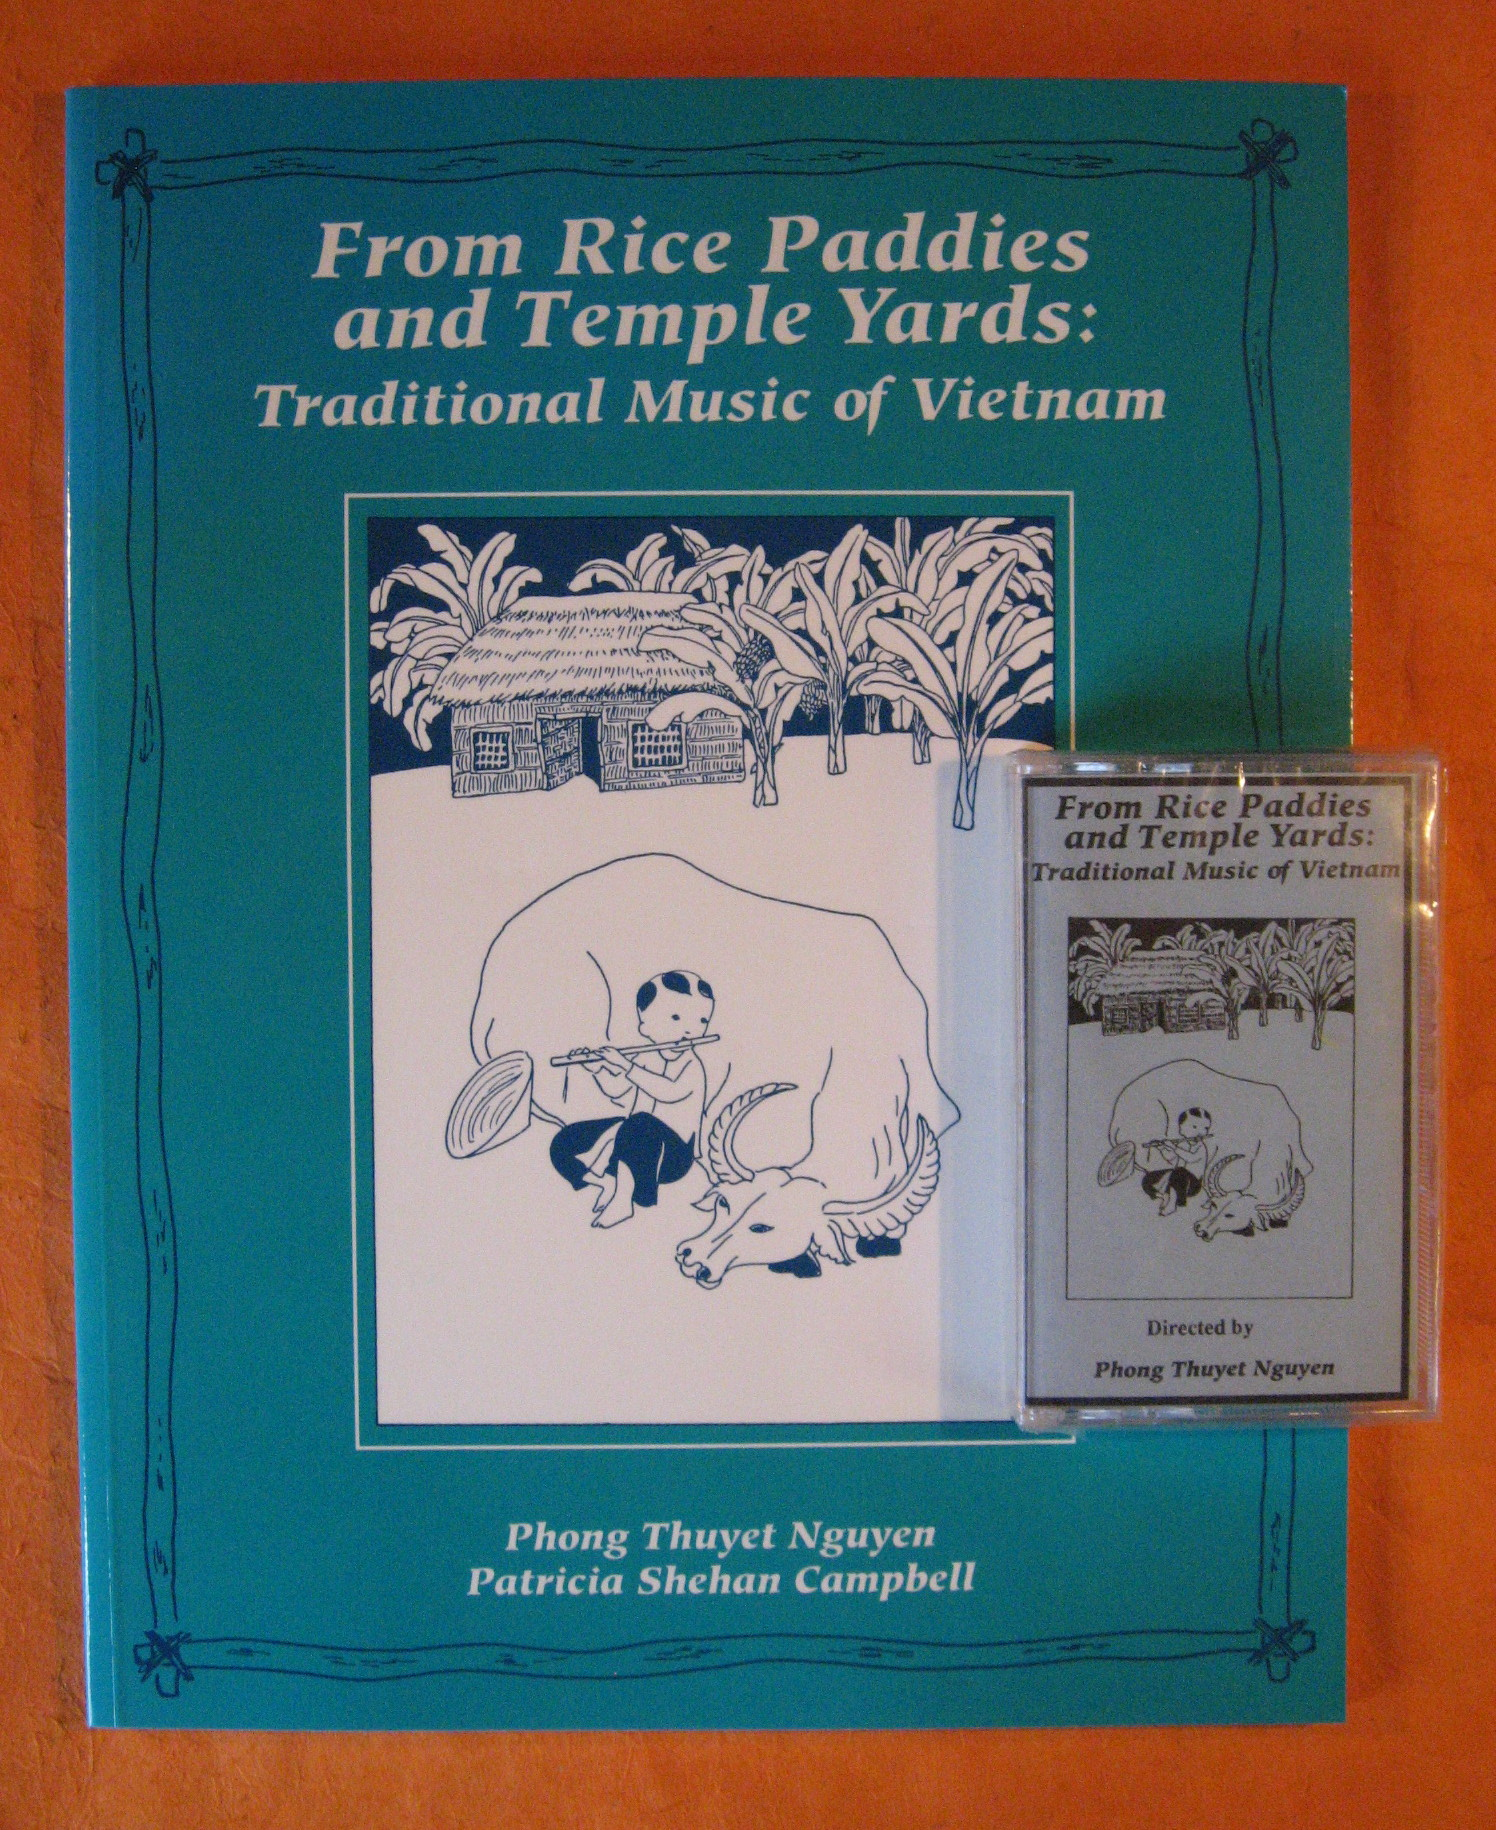 From Rice Paddies and Temple Yards: Traditional Music of Viet Nam with Cassette Tape, Nguyen, Phong, Thuyet; Campbell, Patricia Shehan